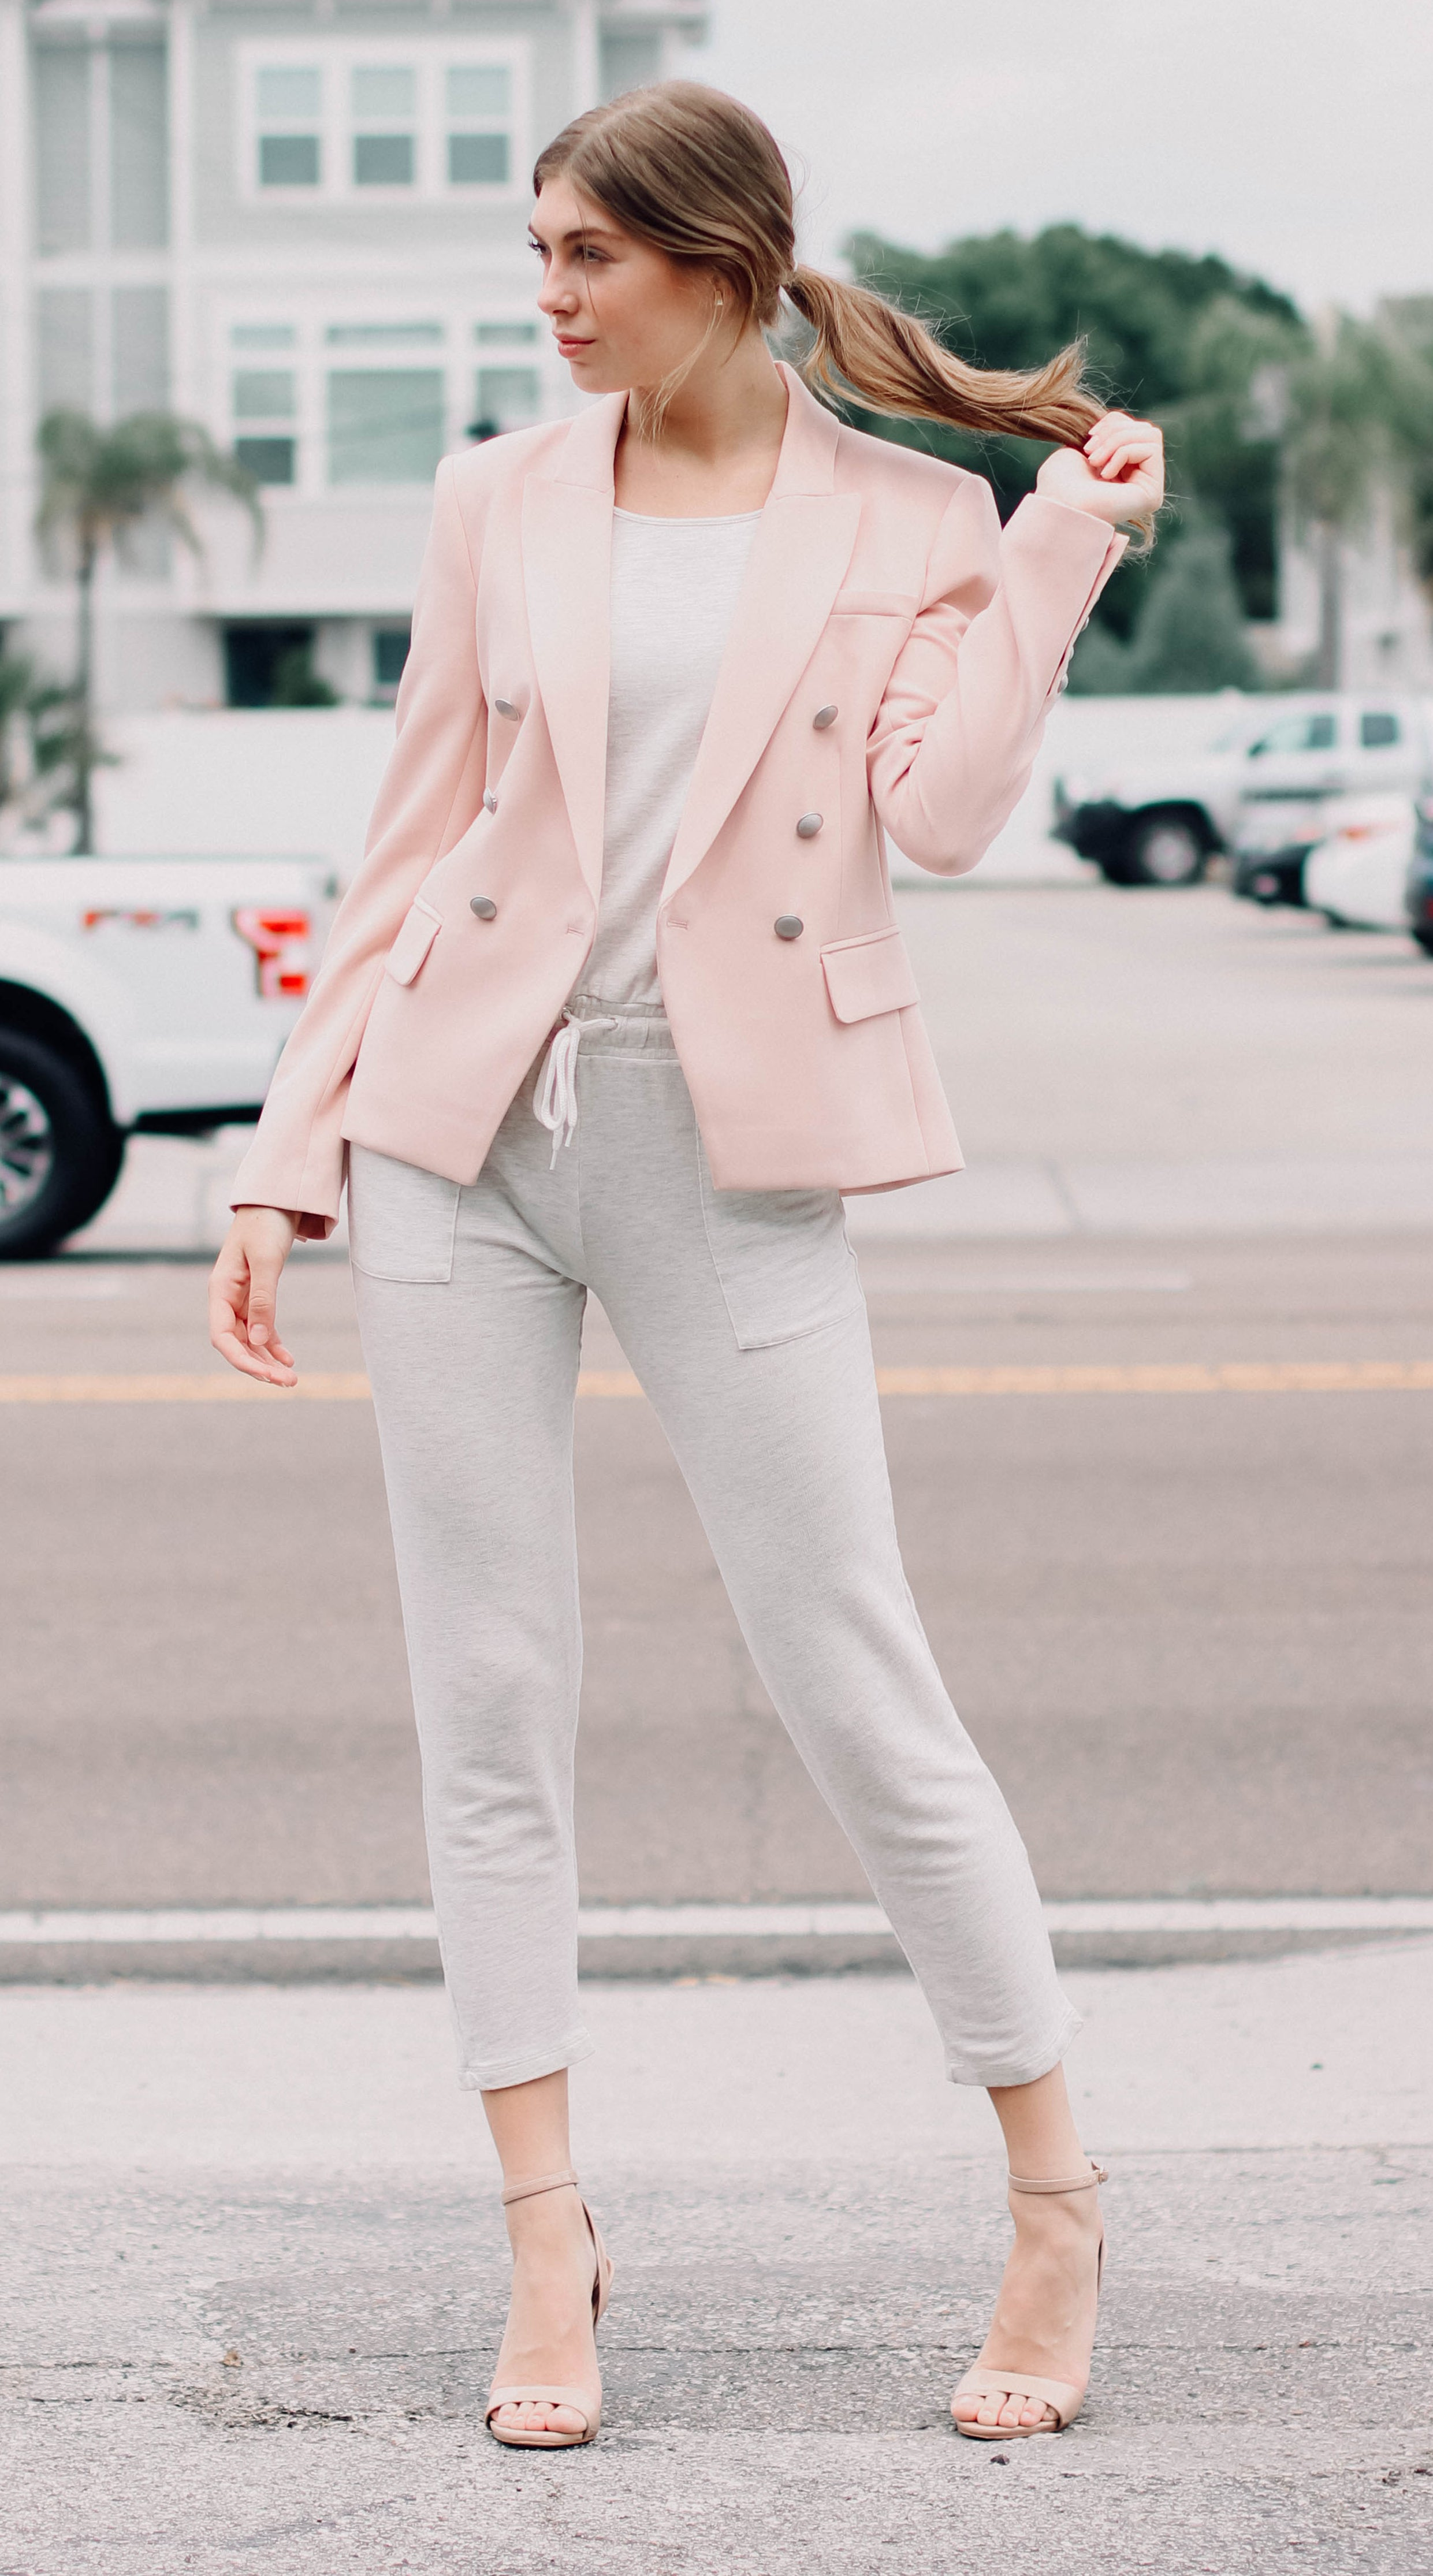 Shop Work From Home Chic - Woman playign with her hair modeling a pink blazer